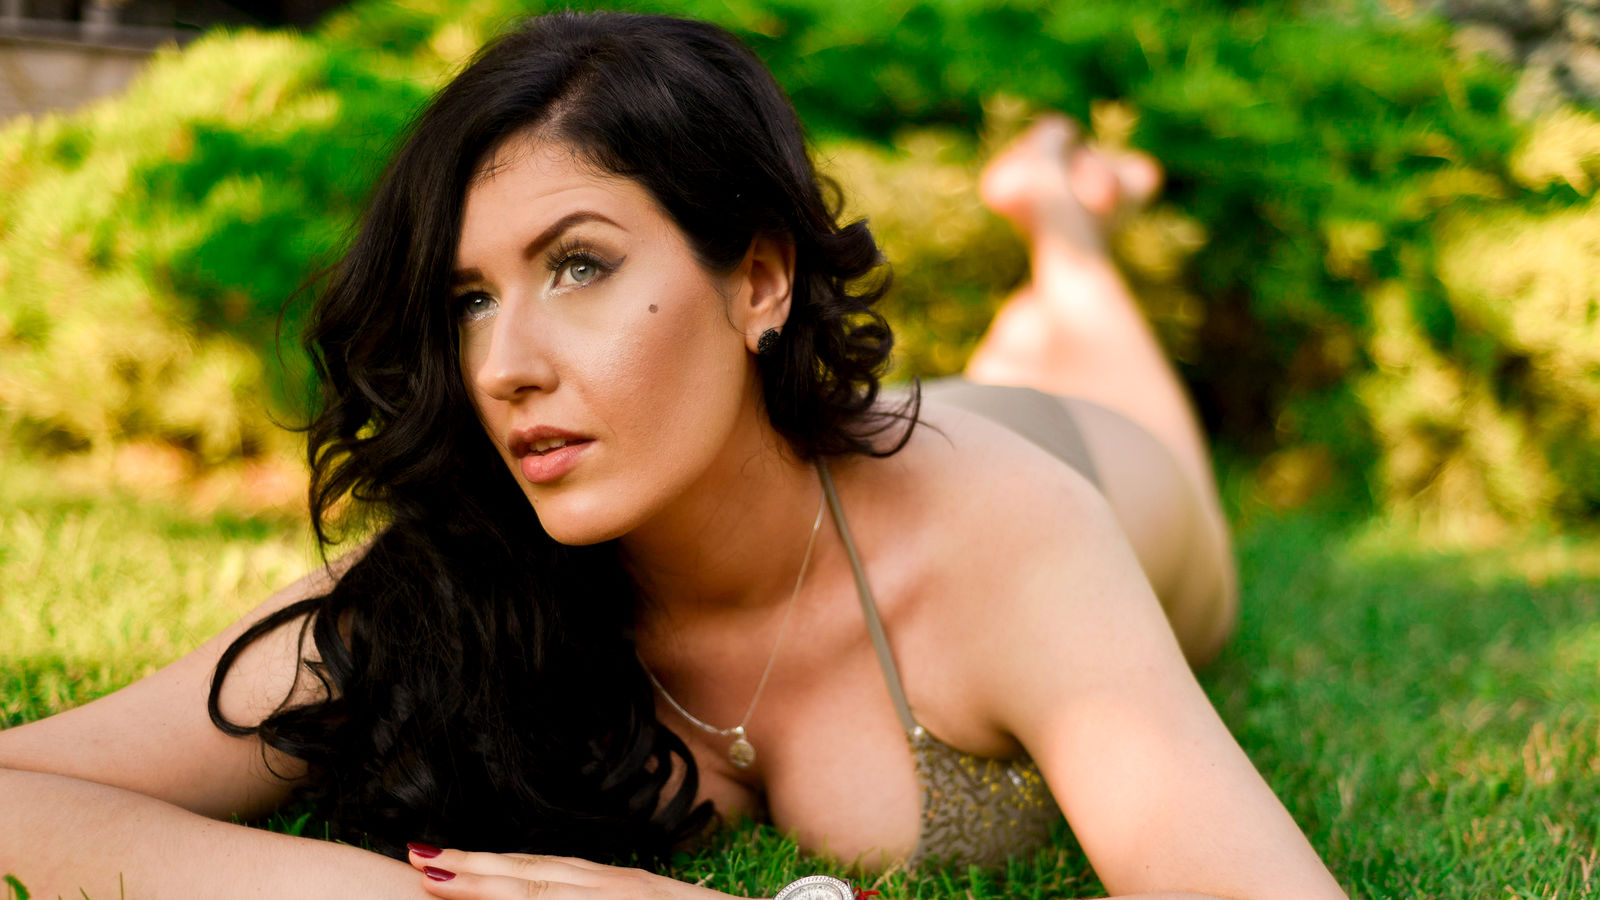 Free Live Sex Cams With Anayaa - Chat Live Sex Cam Profil -5048